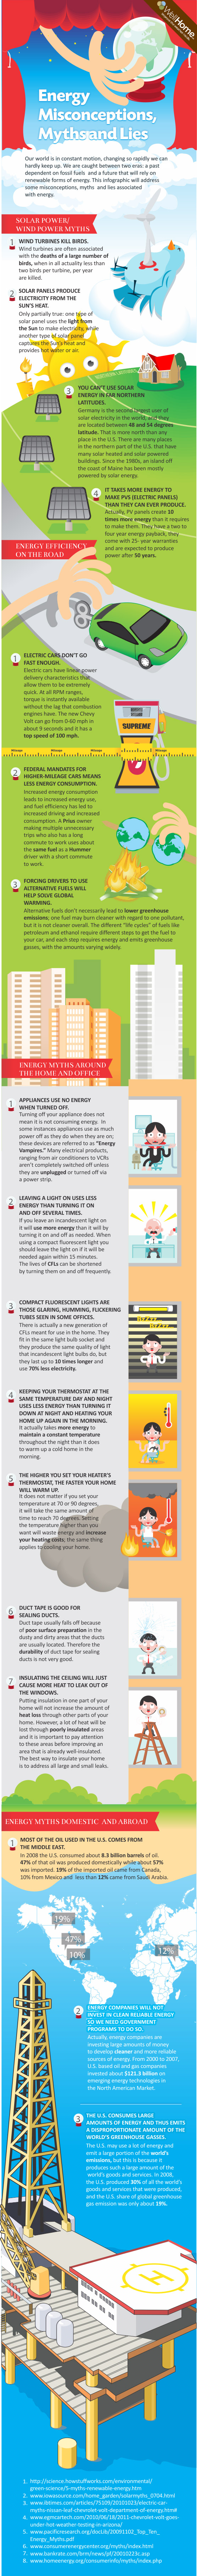 Myths Associated with Energy RESOLVED!